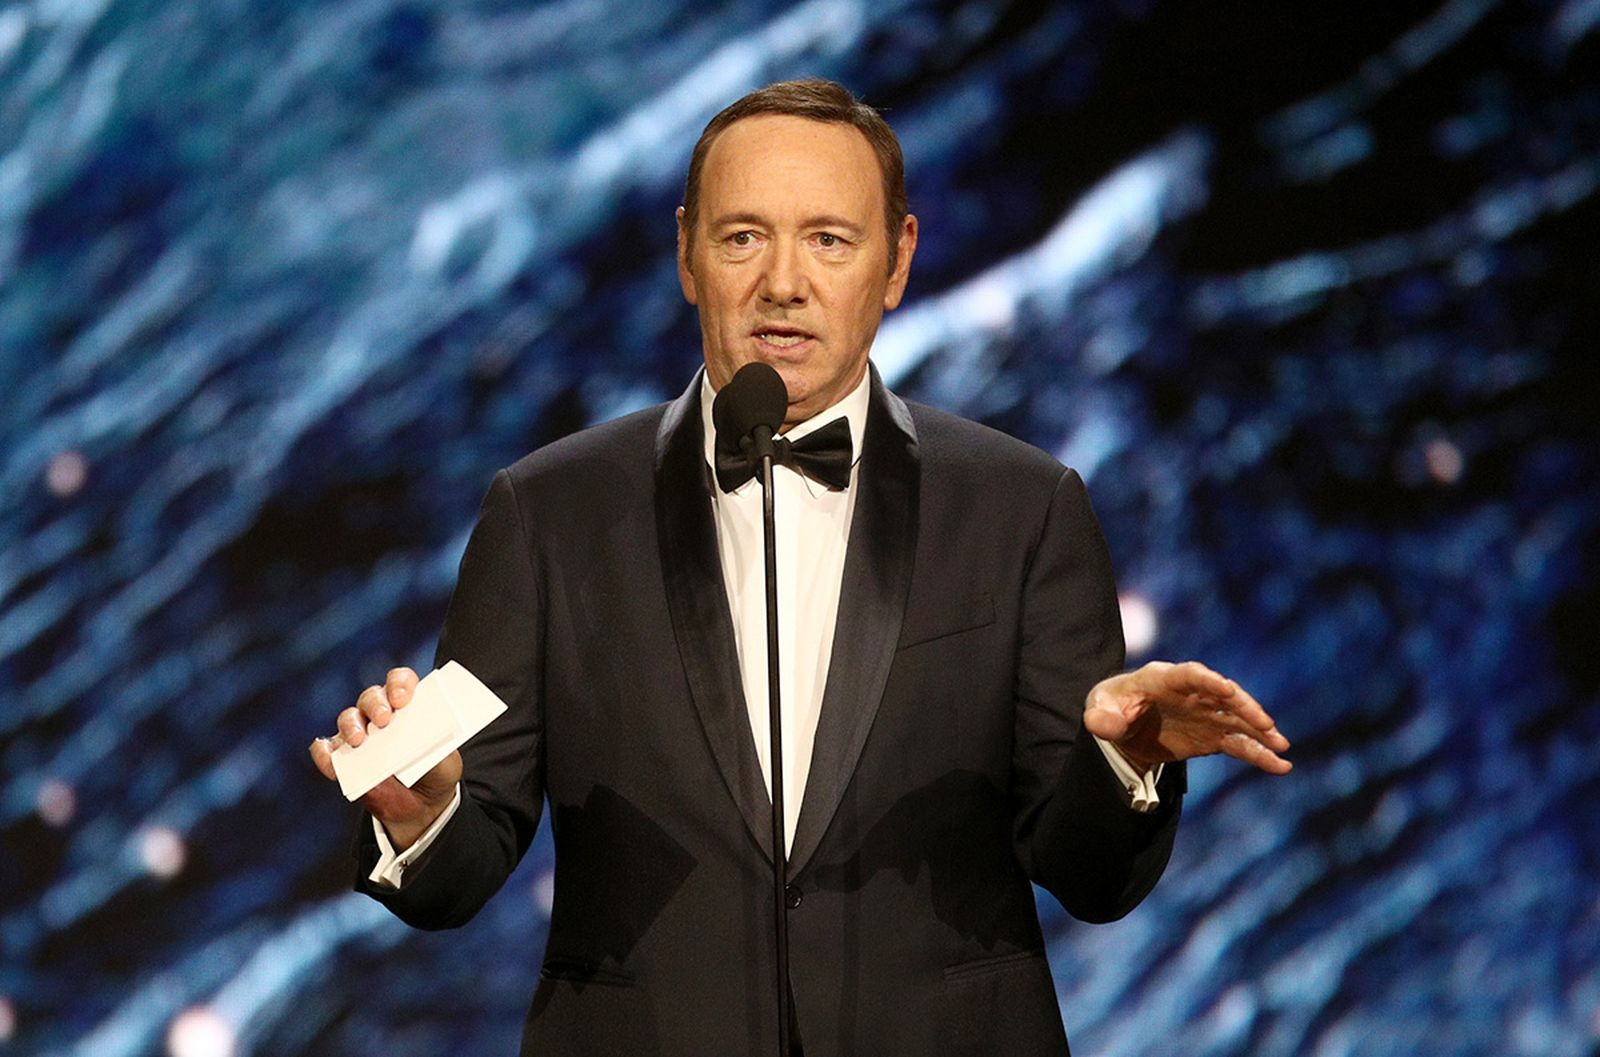 kevin spacey faces more assault allegations Male Sexual Assault